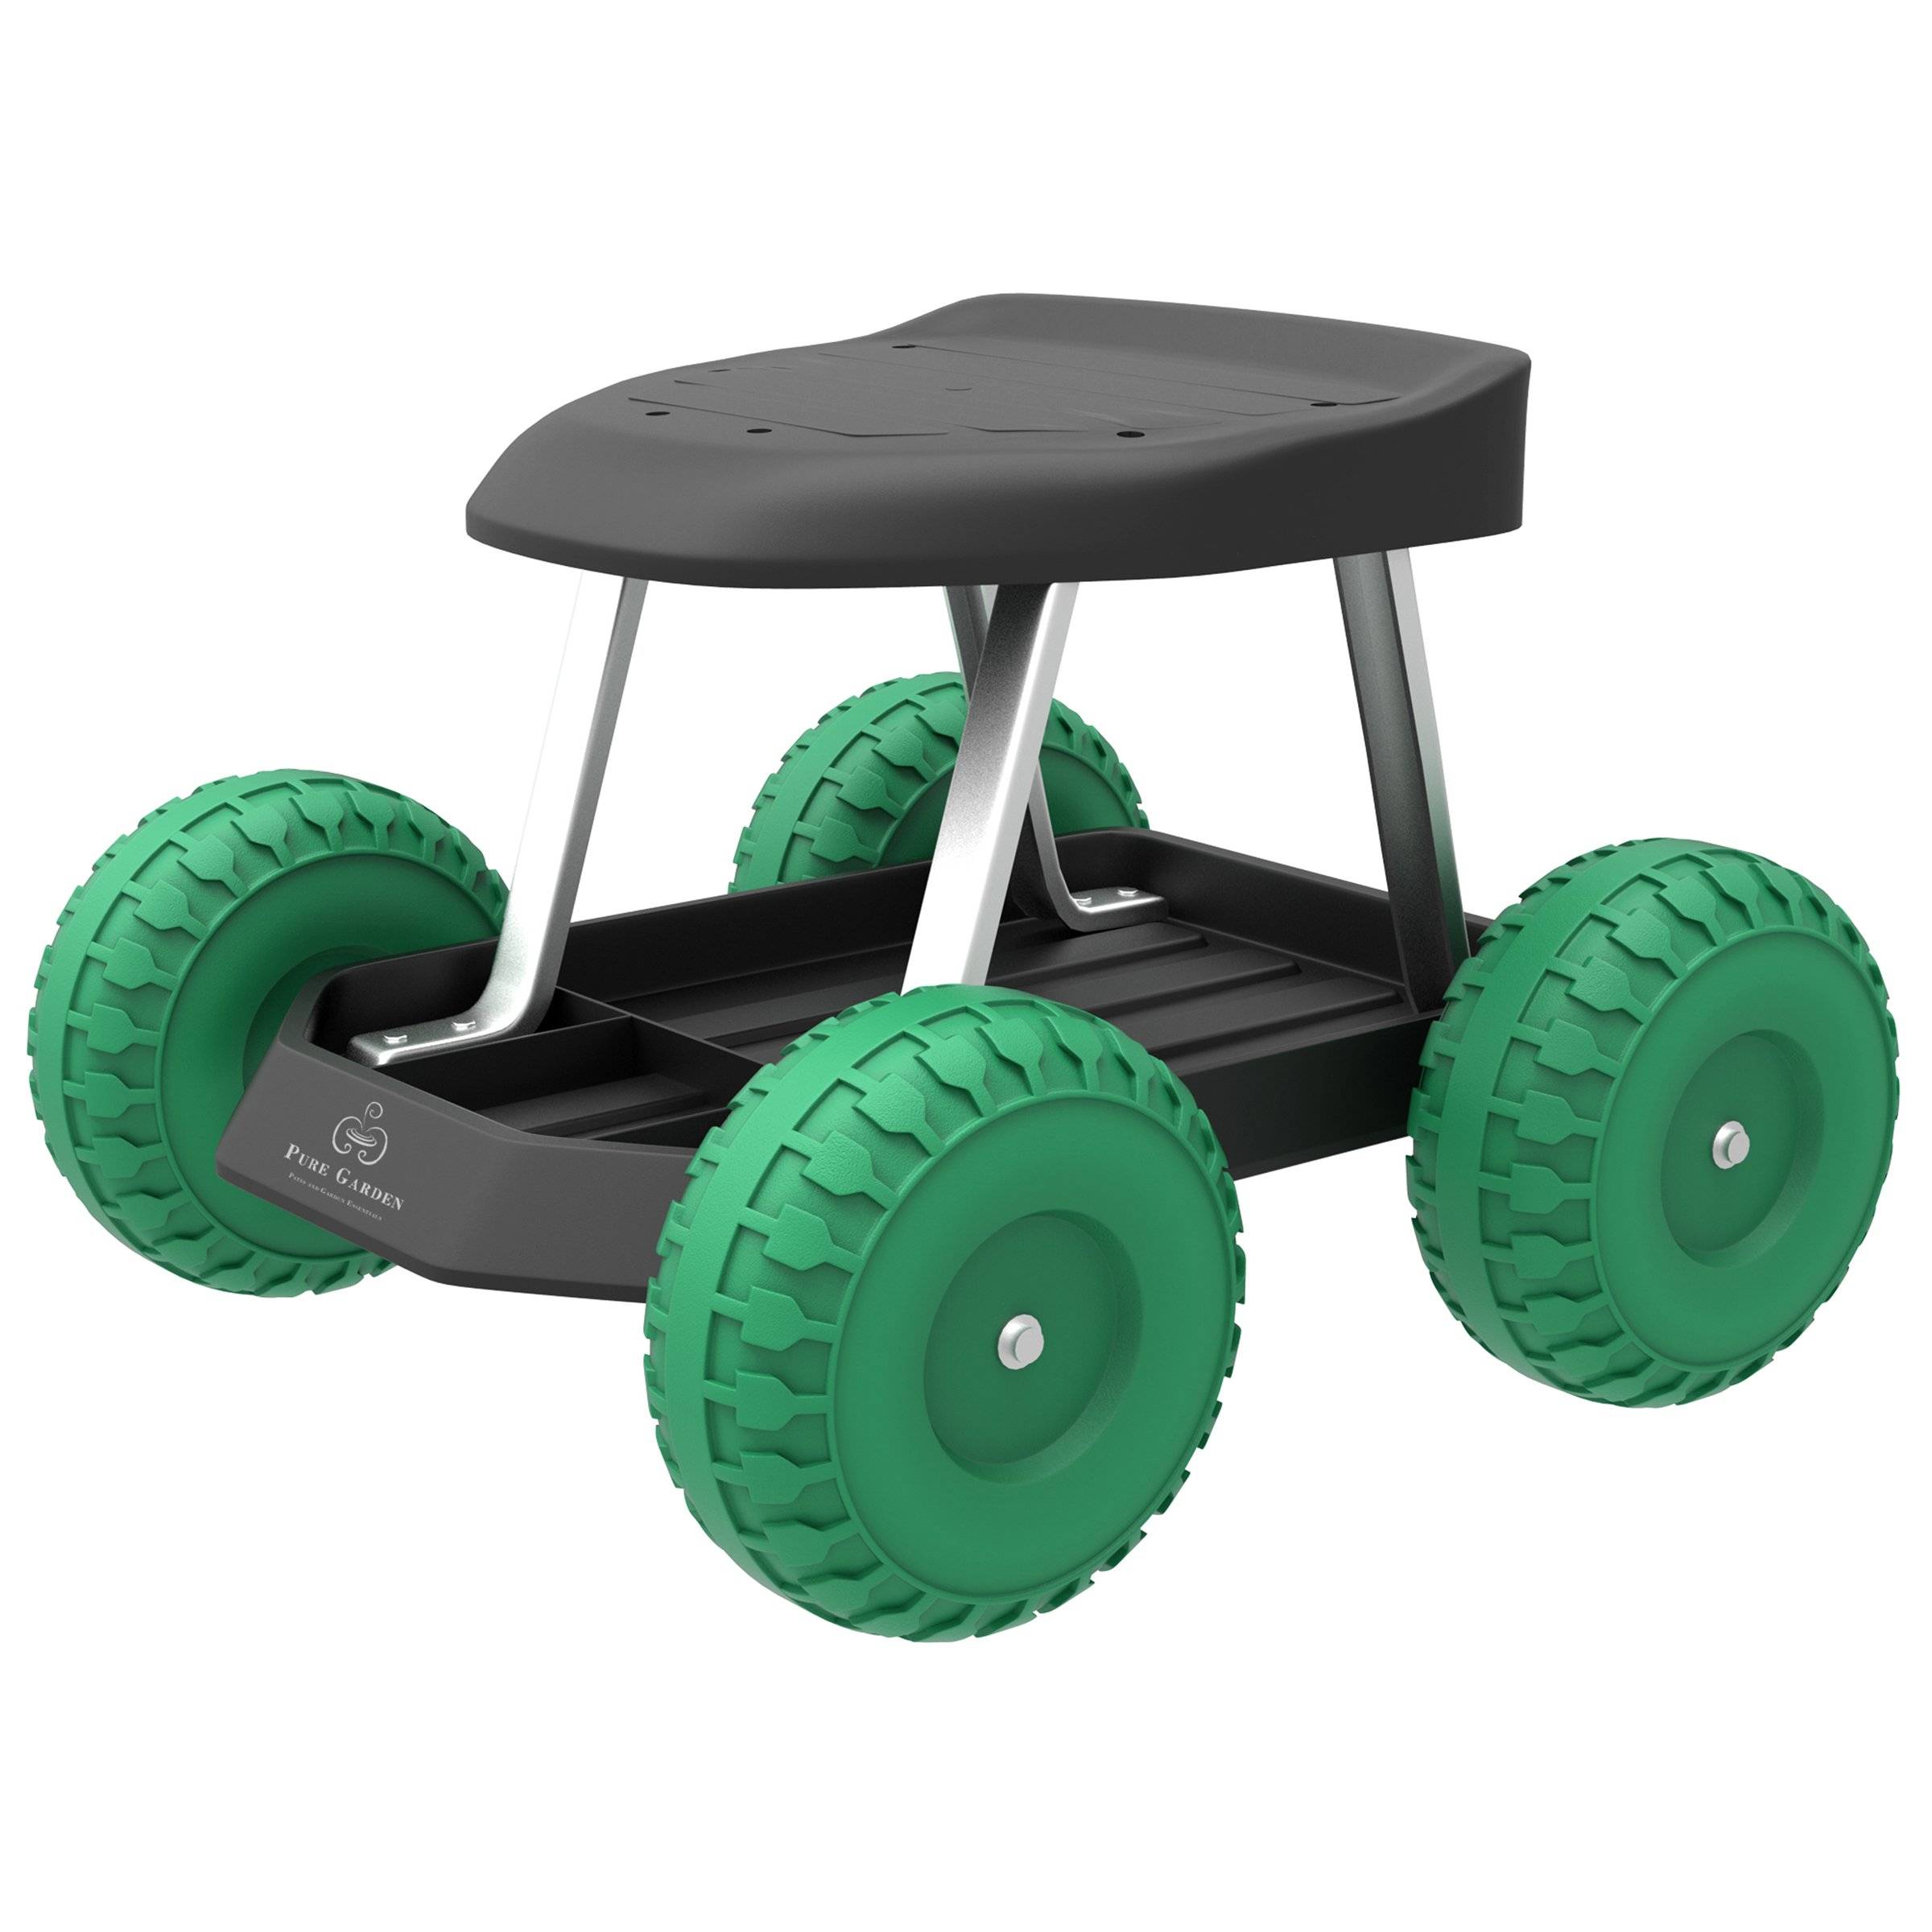 Pure Garden Garden Cart Rolling Scooter with Seat and Tool Tray for Weeding, Gardening, and Outdoor Lawn Care- for Adults and Kids by Pure Garden